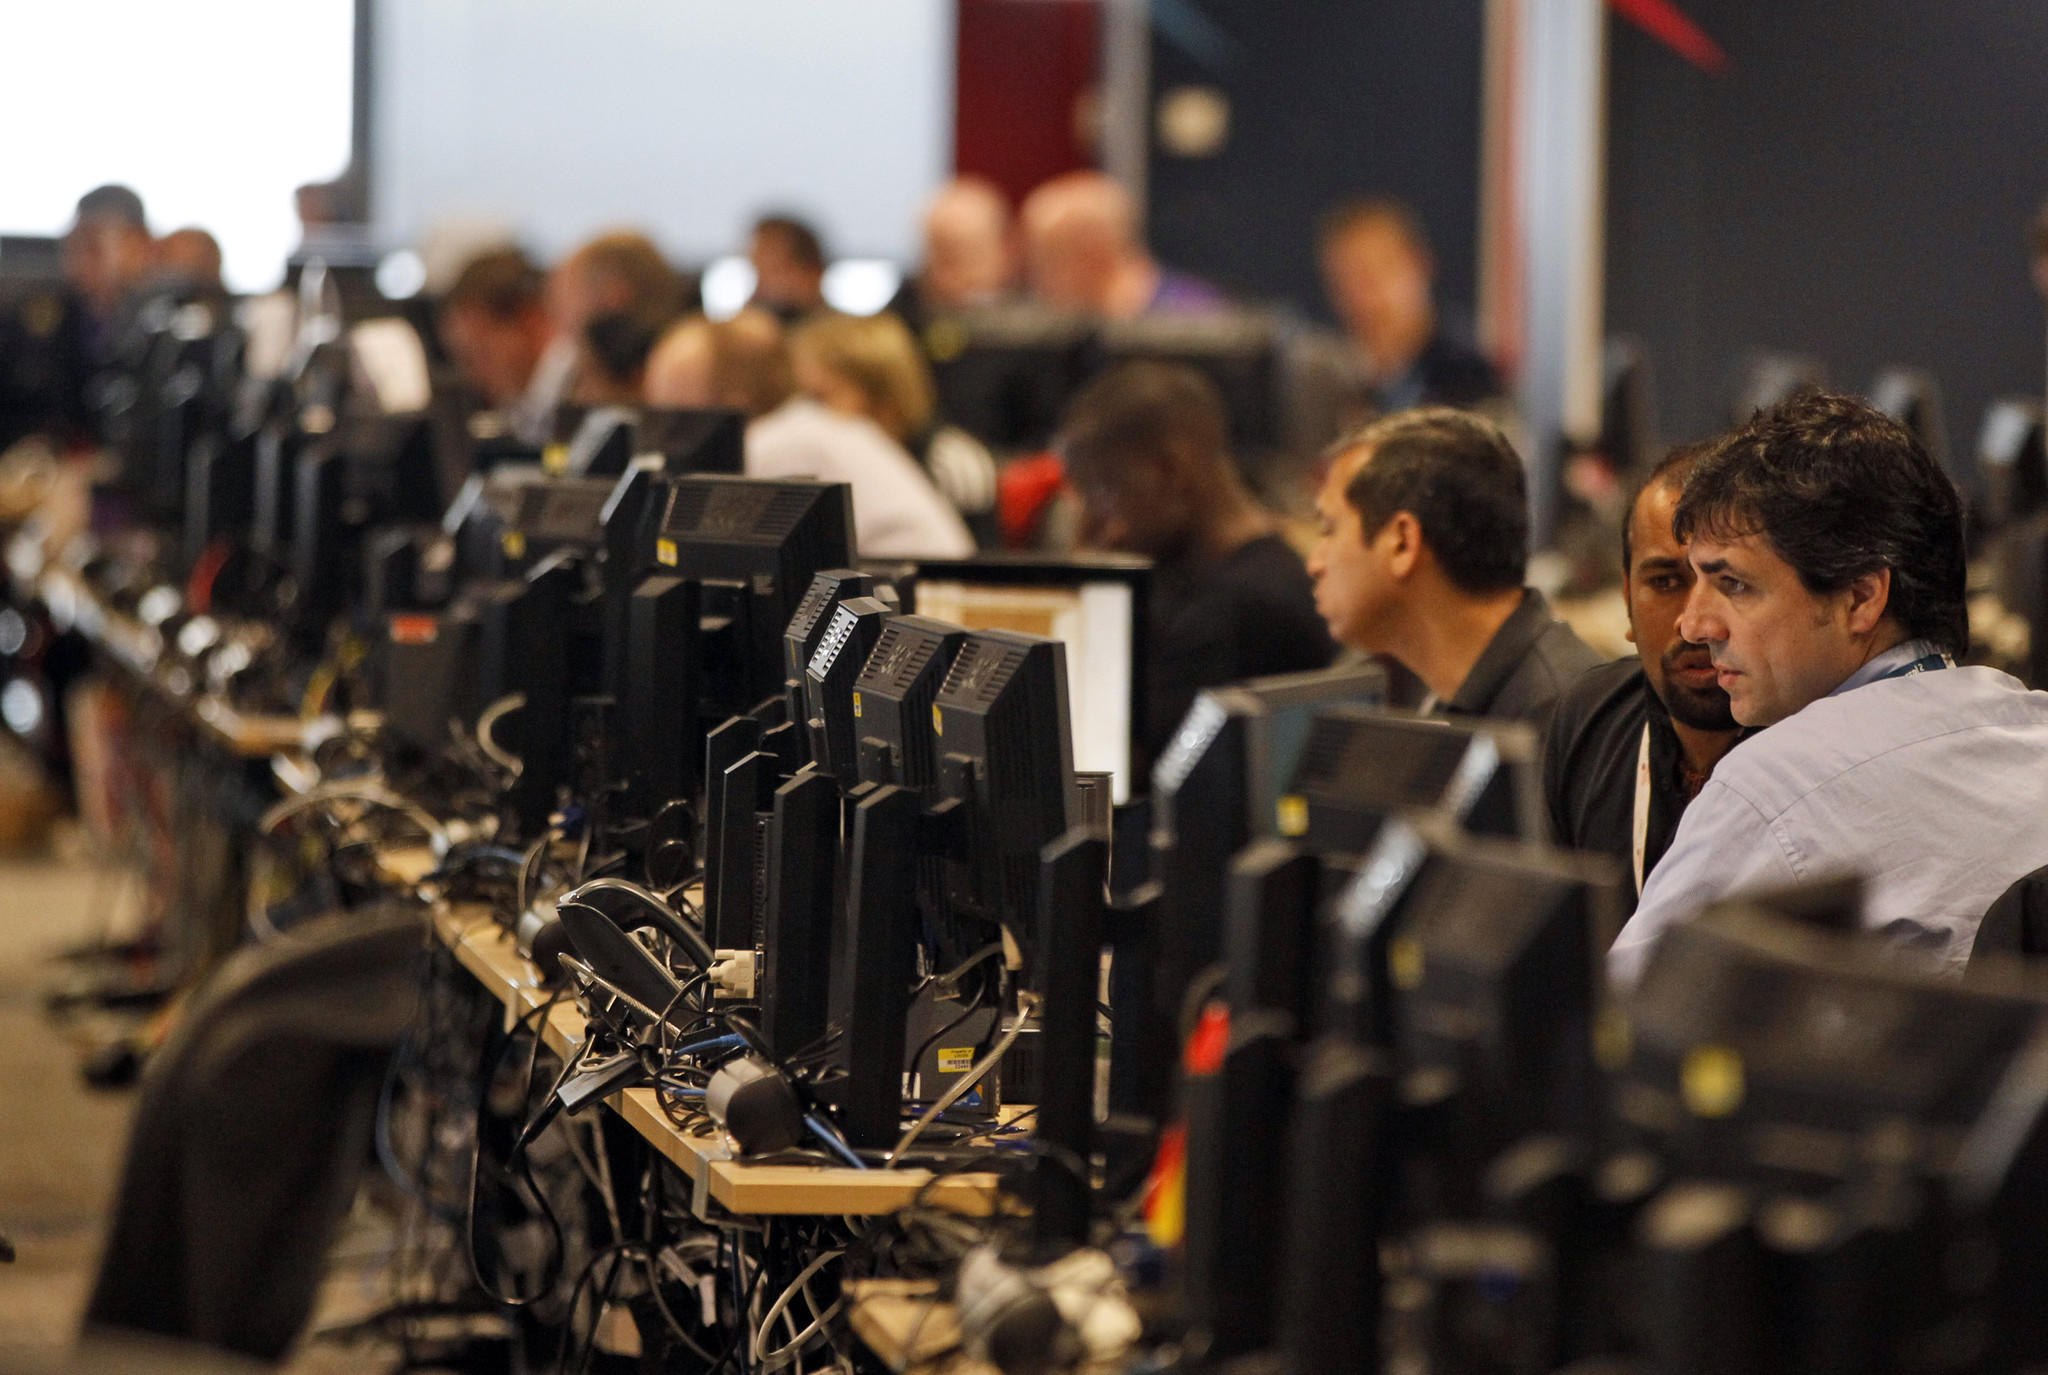 Technology experts at work at the London 2012 Olympics in London. Security experts recommend that users change the passwords for all their online services to protect themselves from the dangers of the Heartbleed bug. However, it is also recommend to wait a day or two before doing so.